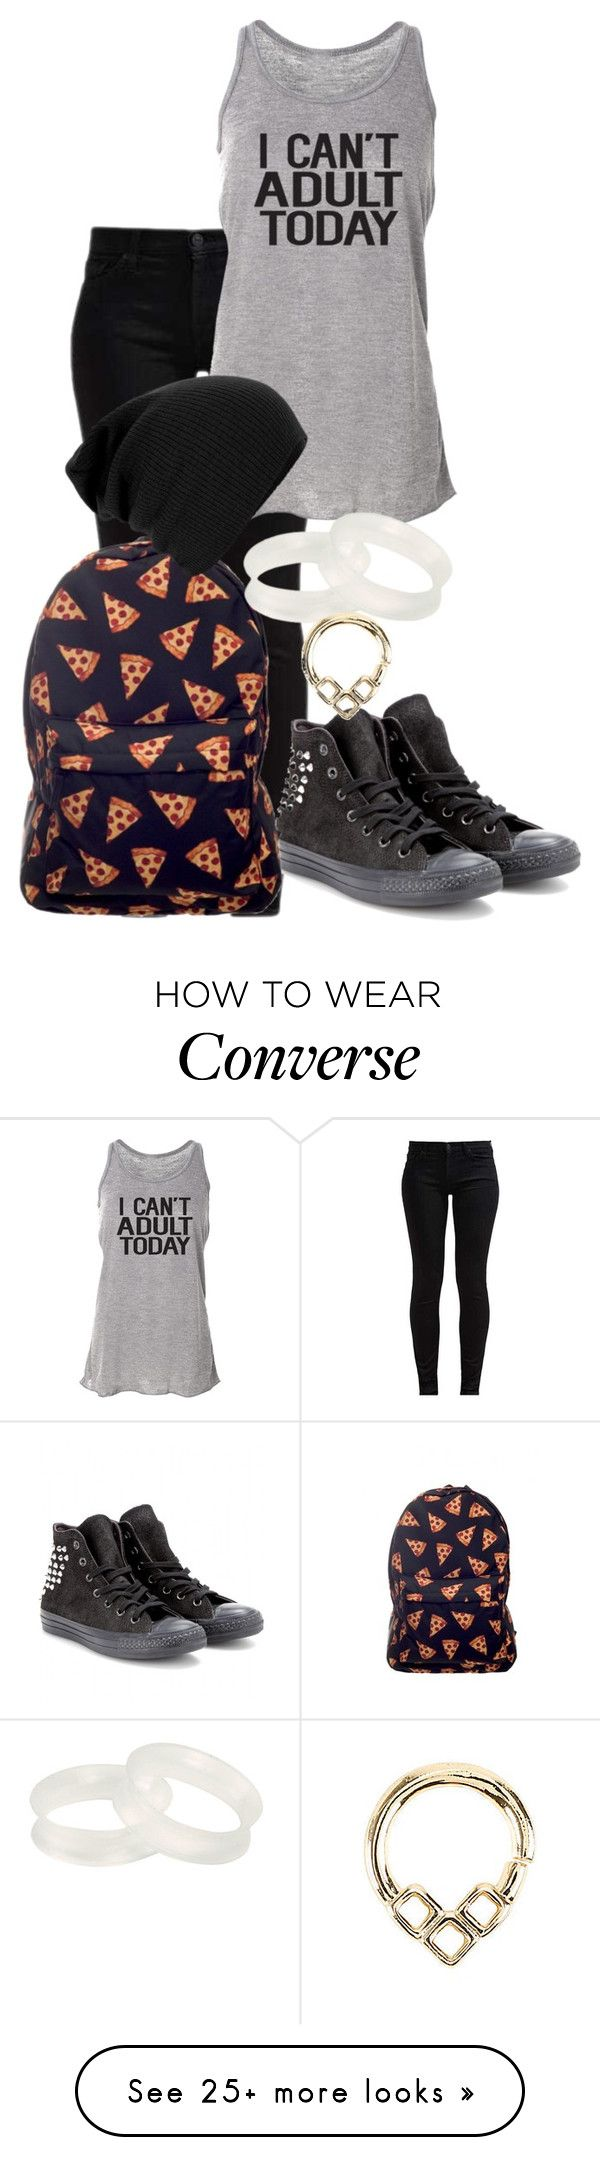 """I see that ring, Renee "" by digital-minerva on Polyvore featuring 7 For All Mankind, Converse and CO"